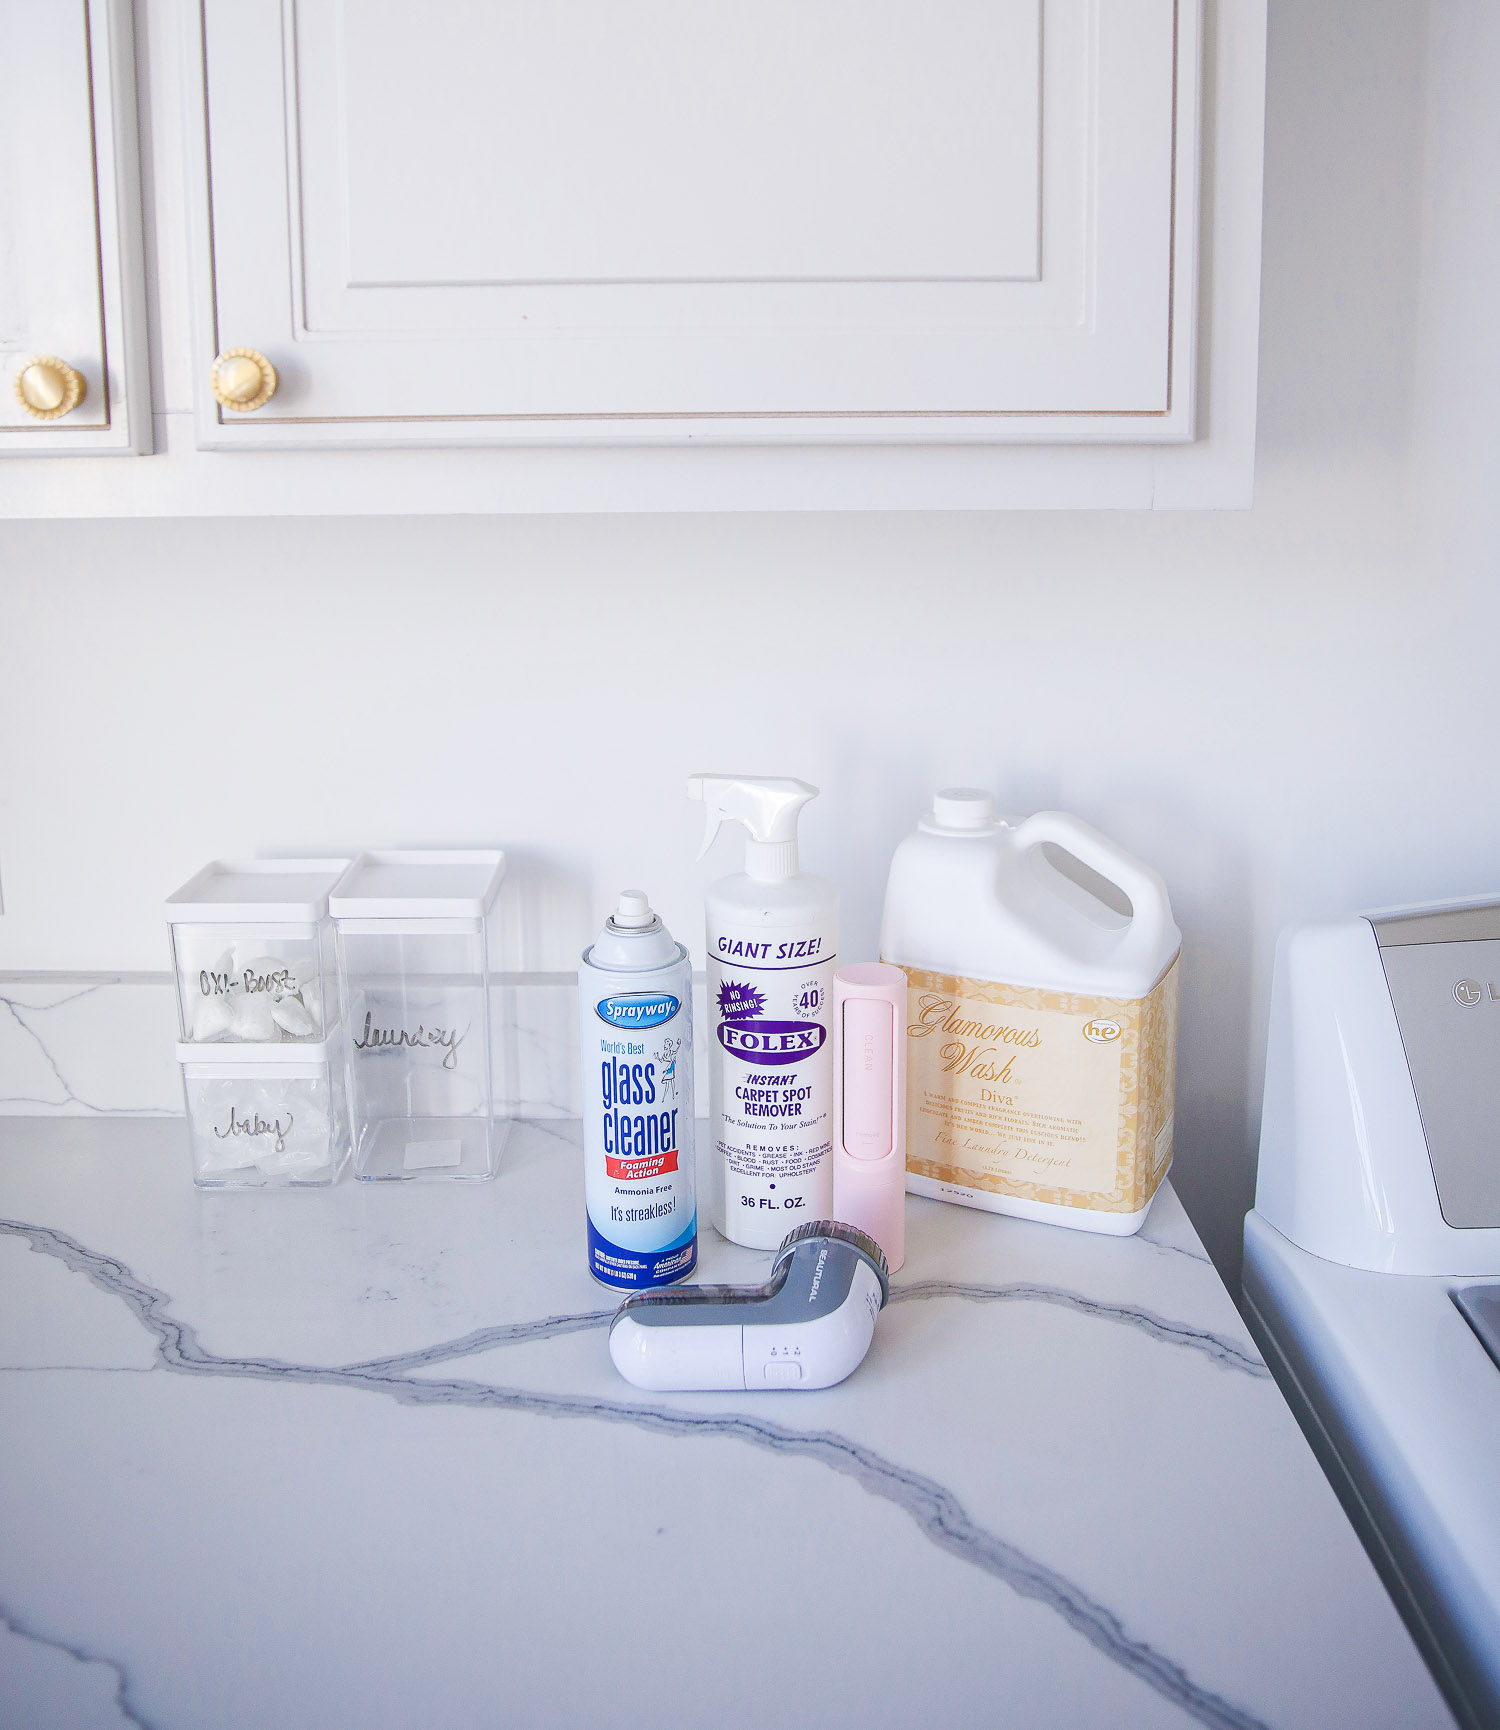 amazon must haves, laundry room amazon must haves cleaner and detergent, diva detergent amazon |Amazon Must Haves by popular US life and style blog, The Sweetest Thing: image of spray away glass cleaner, Folex carpet spot remover, Glamorous Wash Diva, and lint collector.